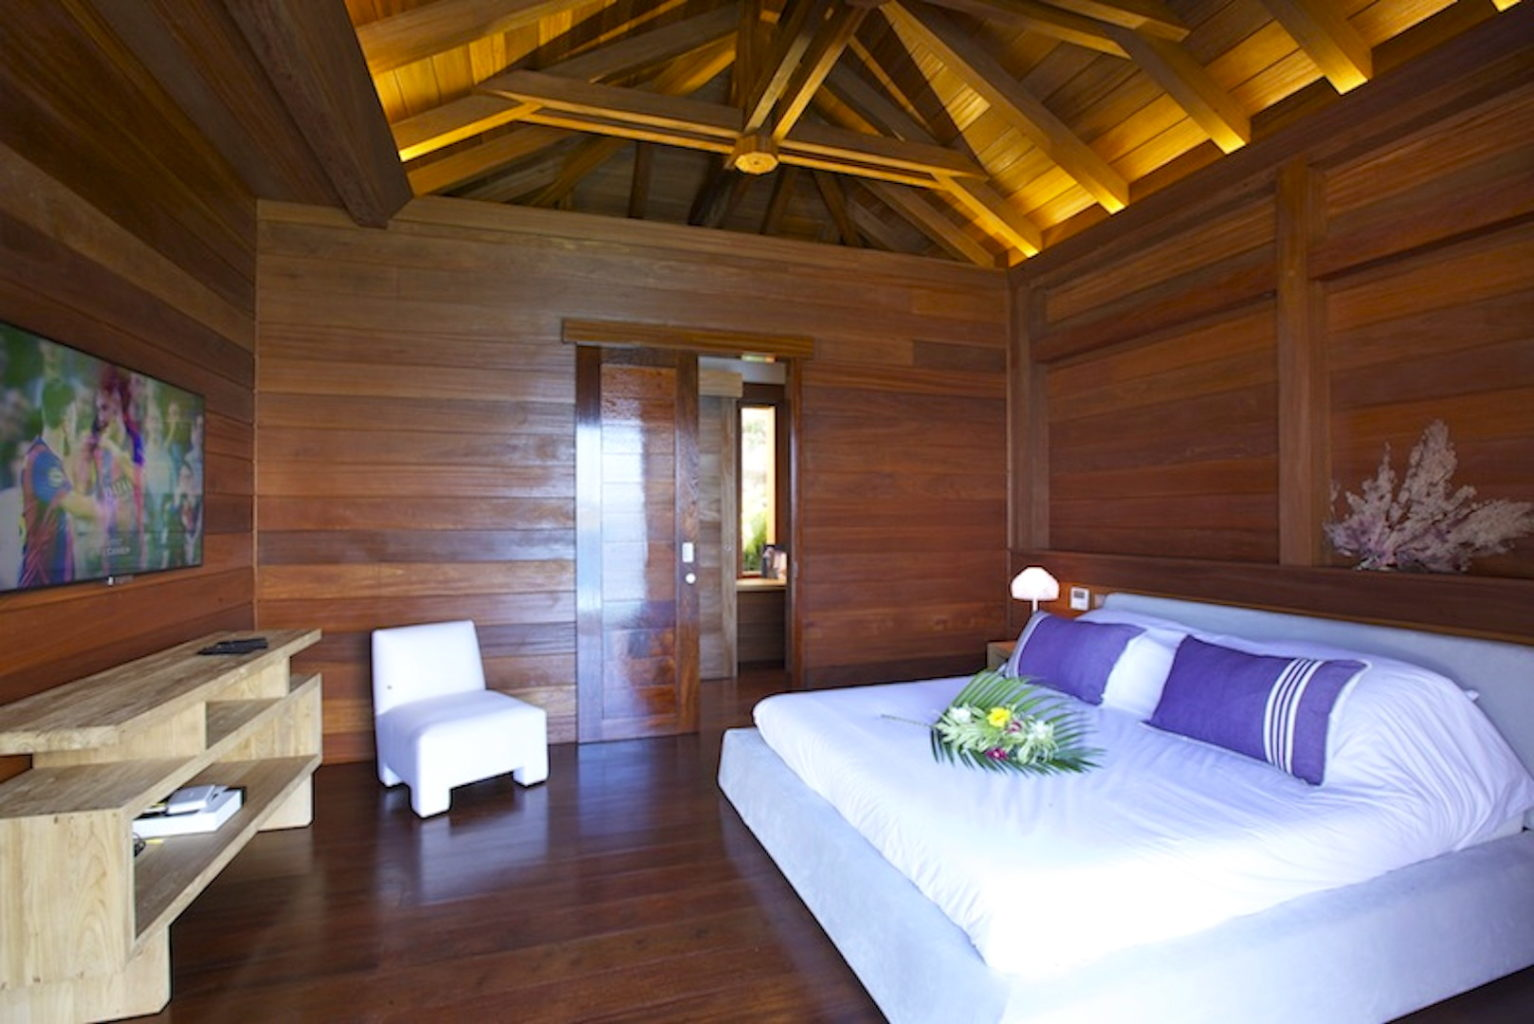 Villa What Else - Balinese Villa for Rent St Barth with Car Rental Included - Bedroom